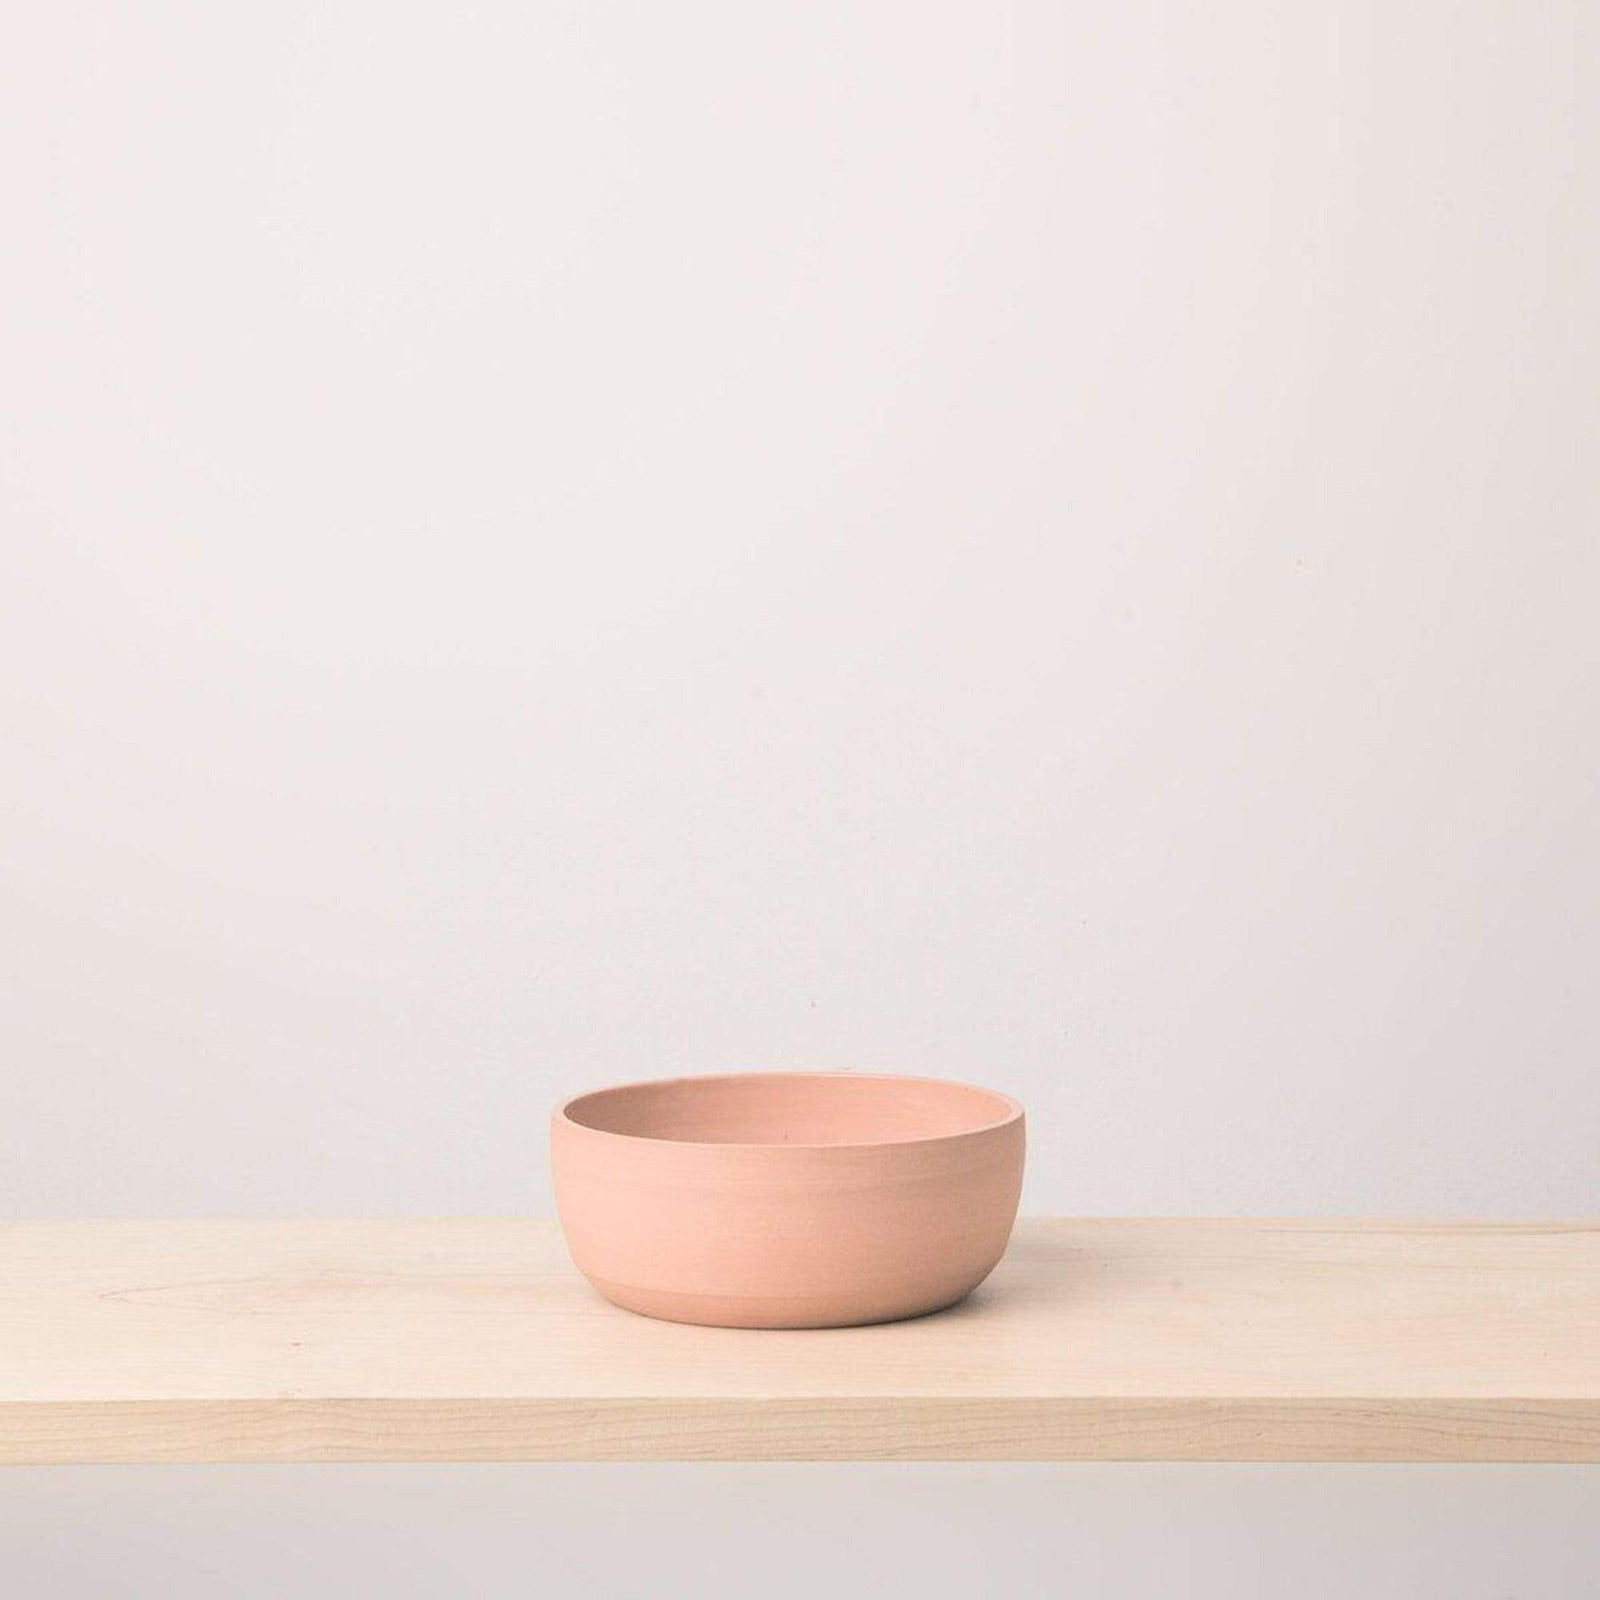 L'Impatience Kitchenware L'ingenu Bowl